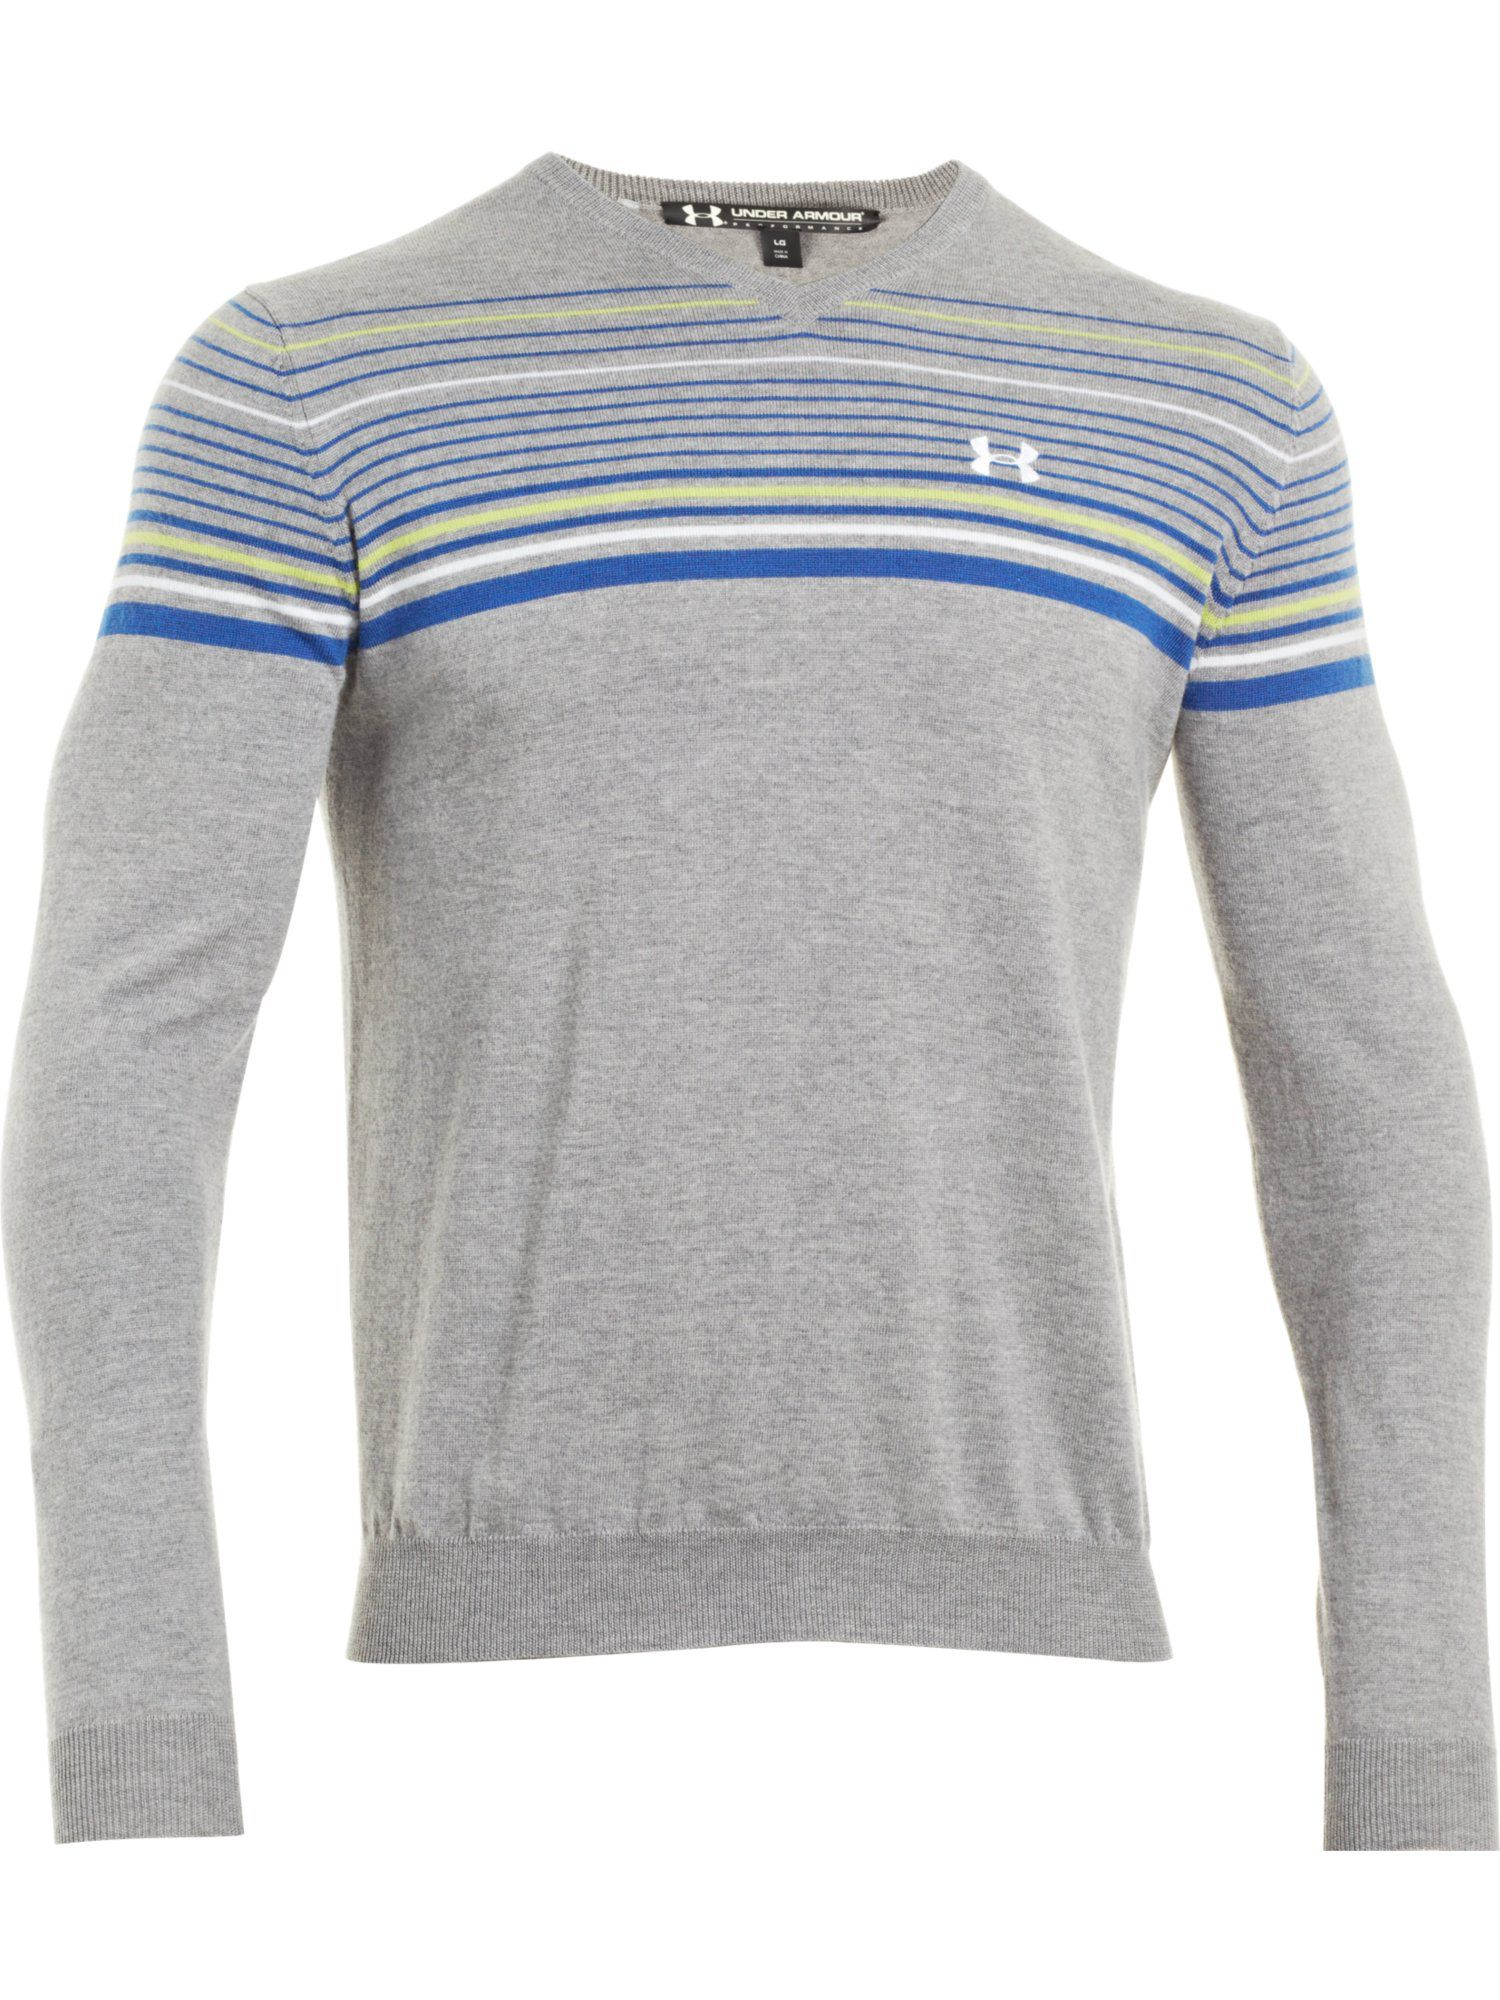 V neck chest stripe merino sweater